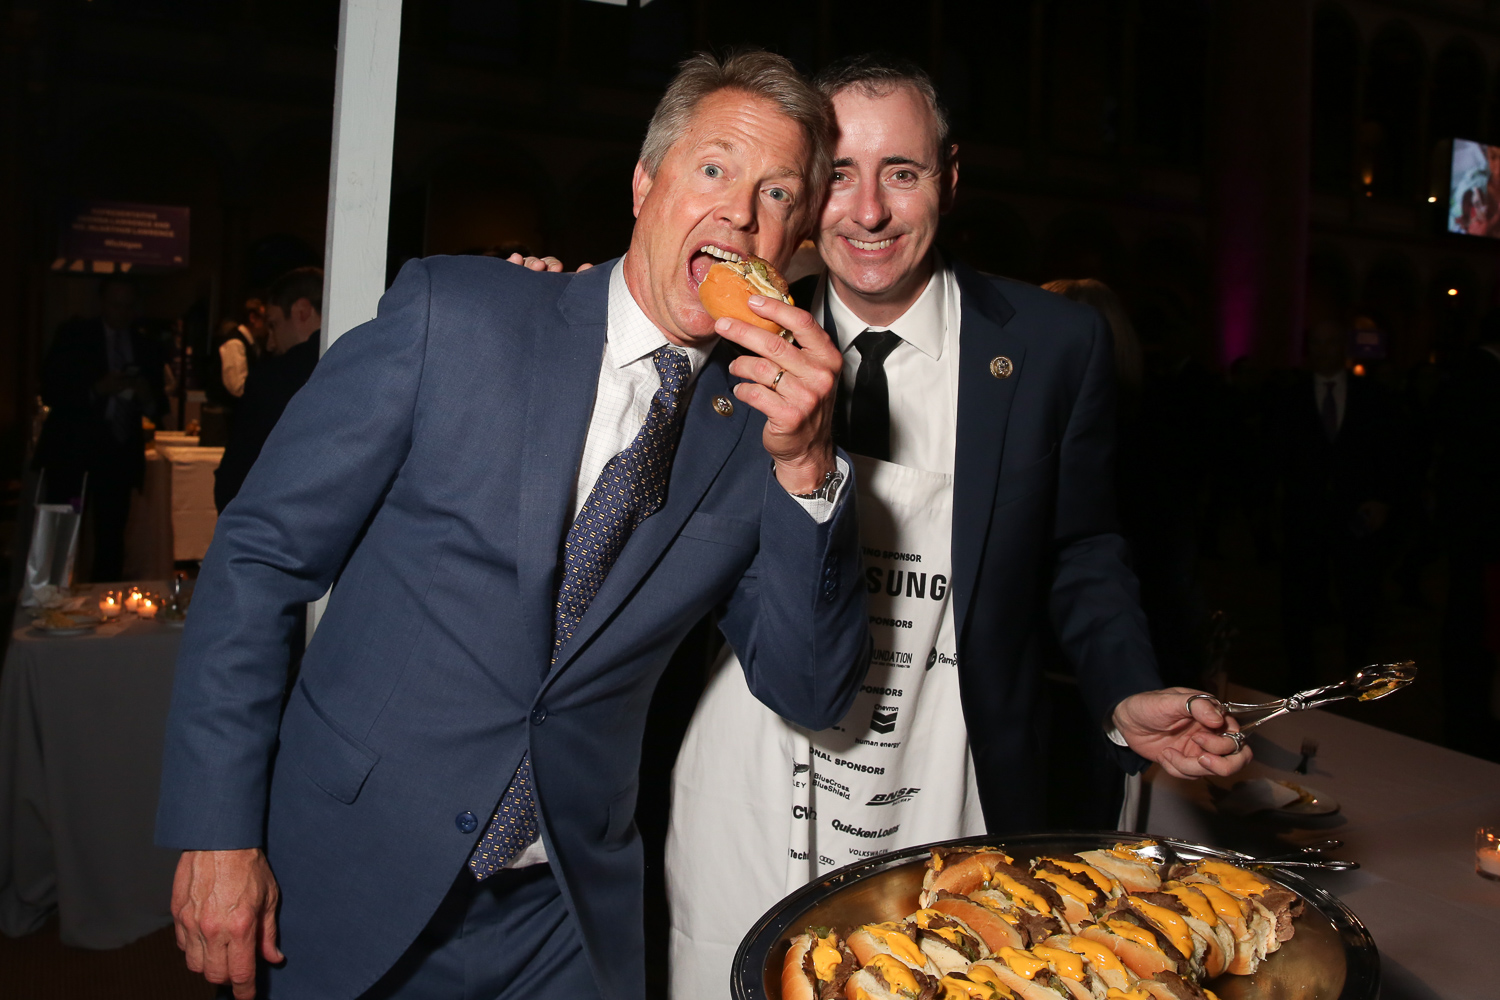 Rep. Roger Marshall chows down on Rep. Brian Fitzpatrick's Philly cheesesteaks.{ }(Amanda Andrade-Rhoades/DC Refined)